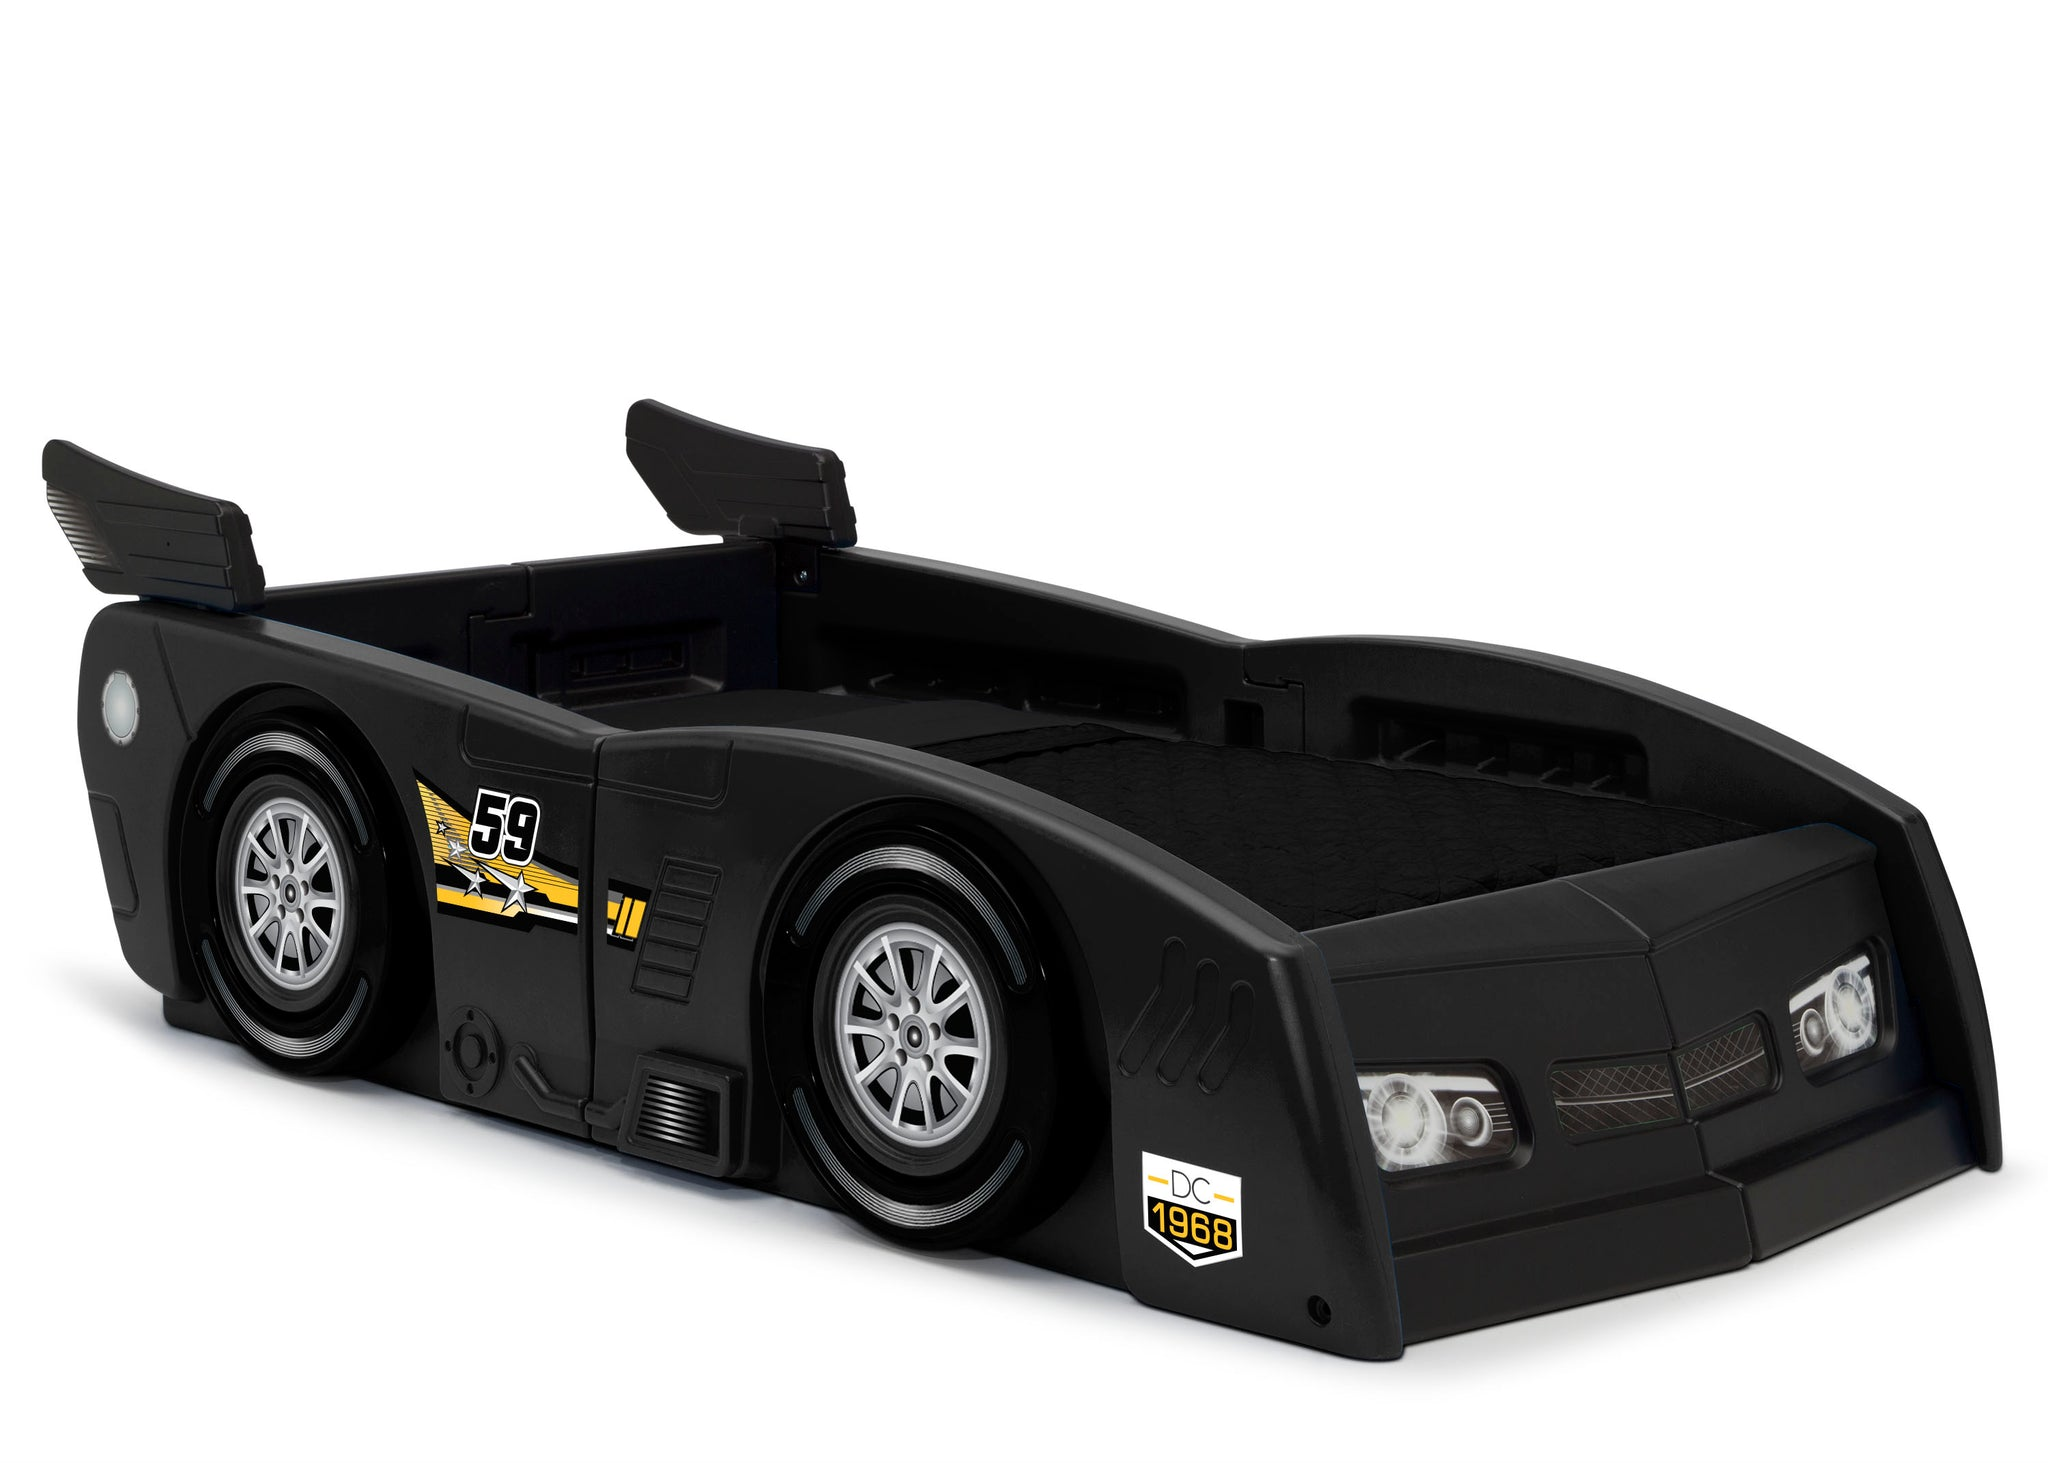 Delta Children Black (001) Grand Prix Race Car Toddler-to-Twin Bed, Toddler Right Silo View